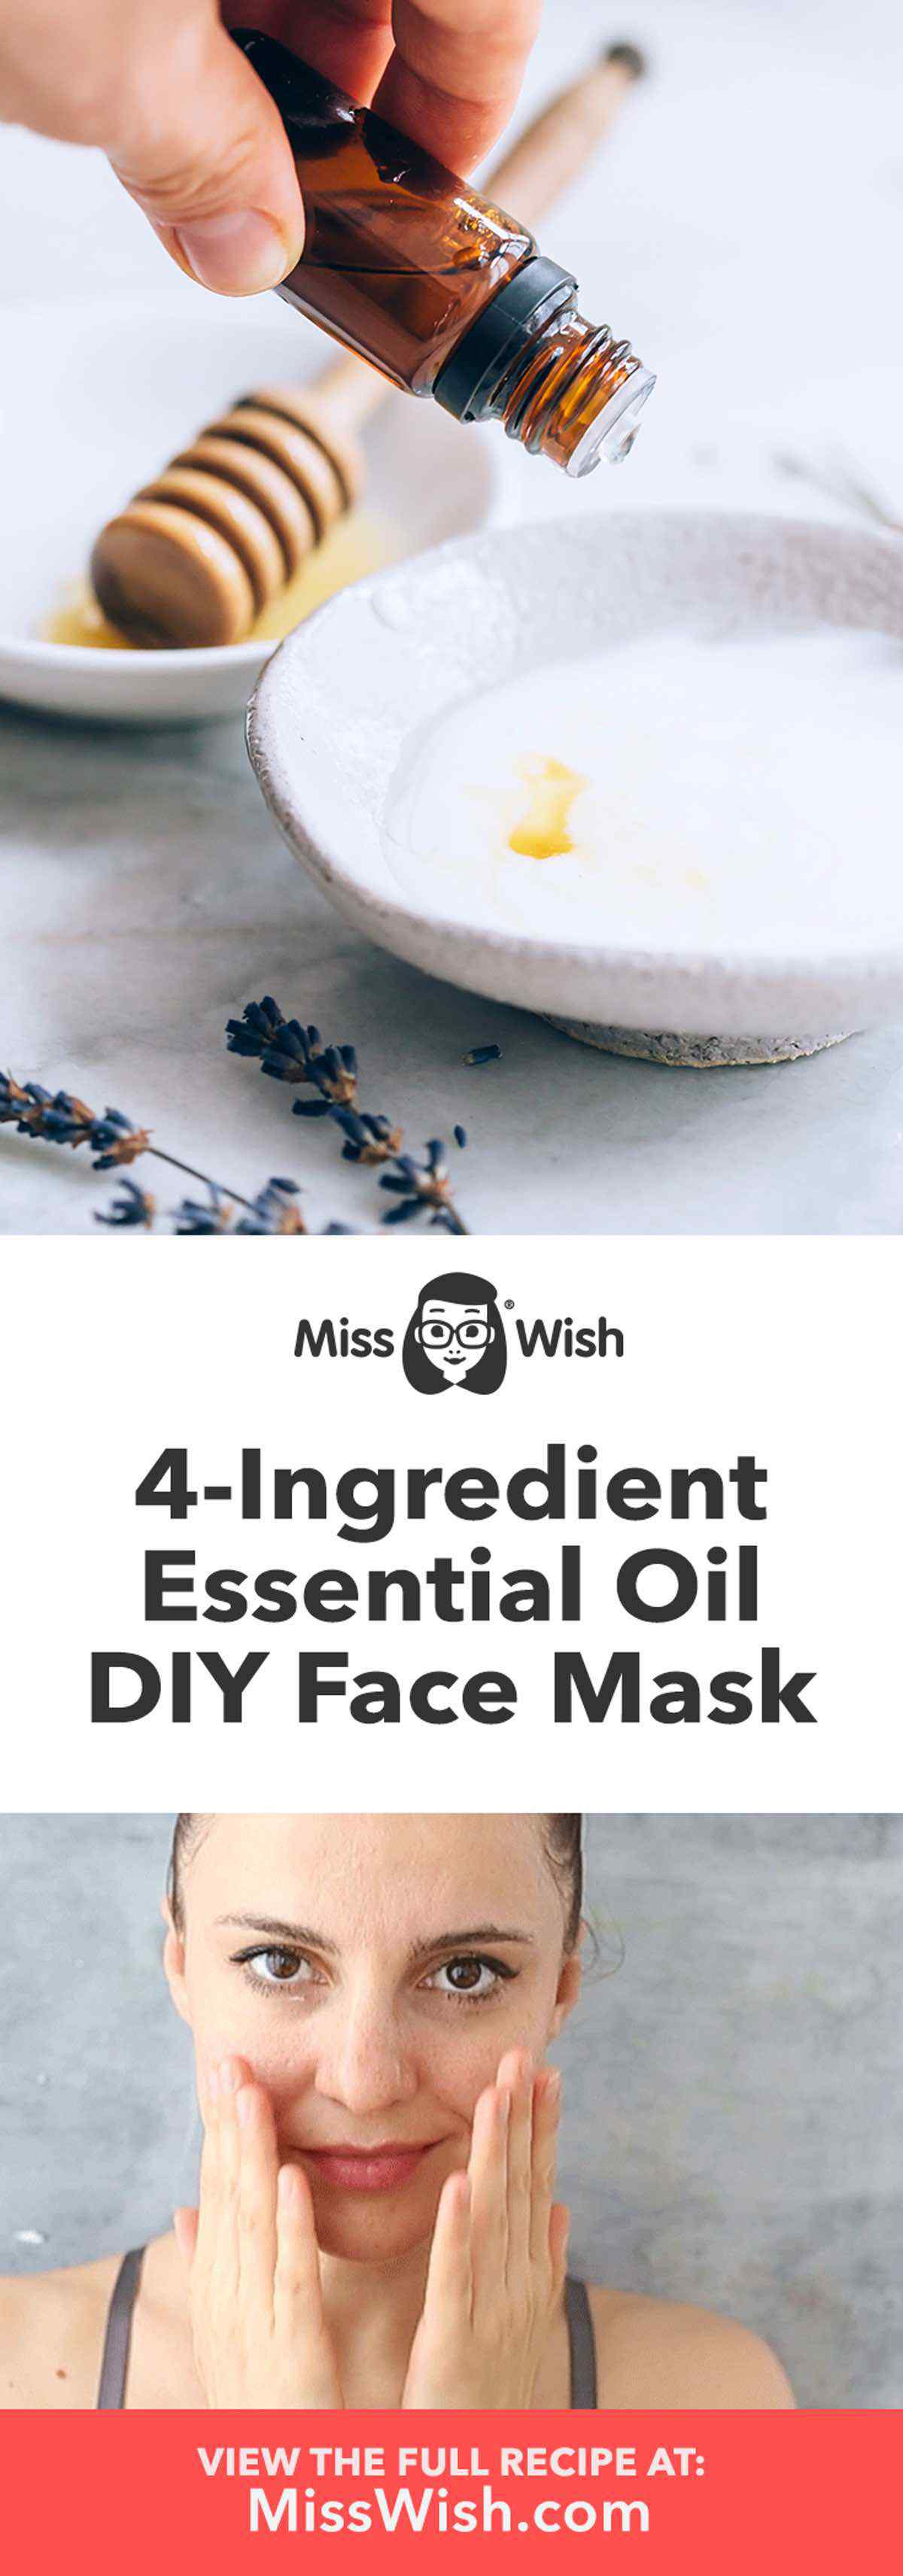 4-Ingredient Essential Oil Infused Face Mask Recipe